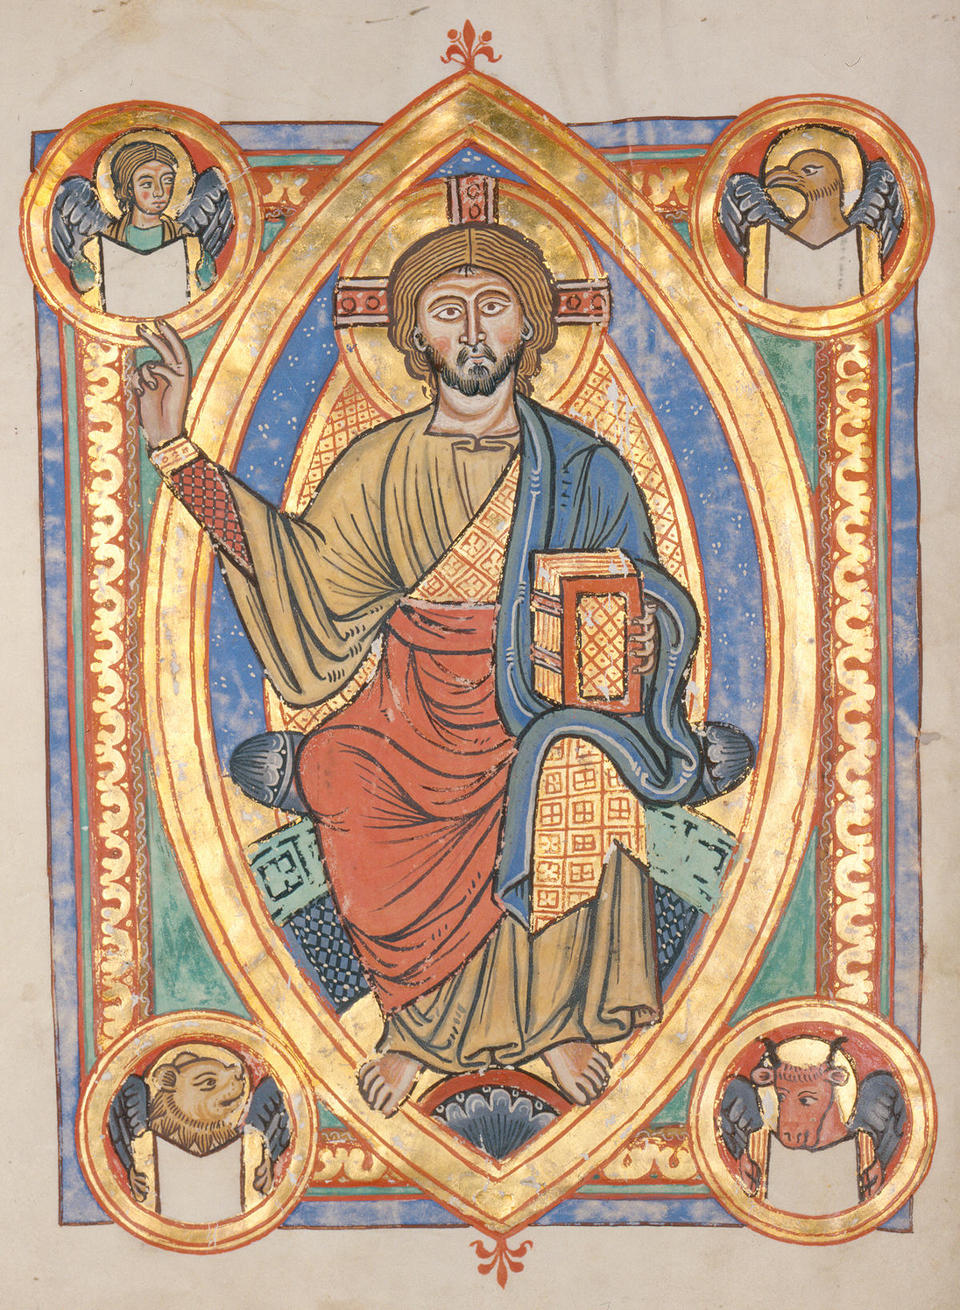 Christ in Majesty from the Codex Bruchsal